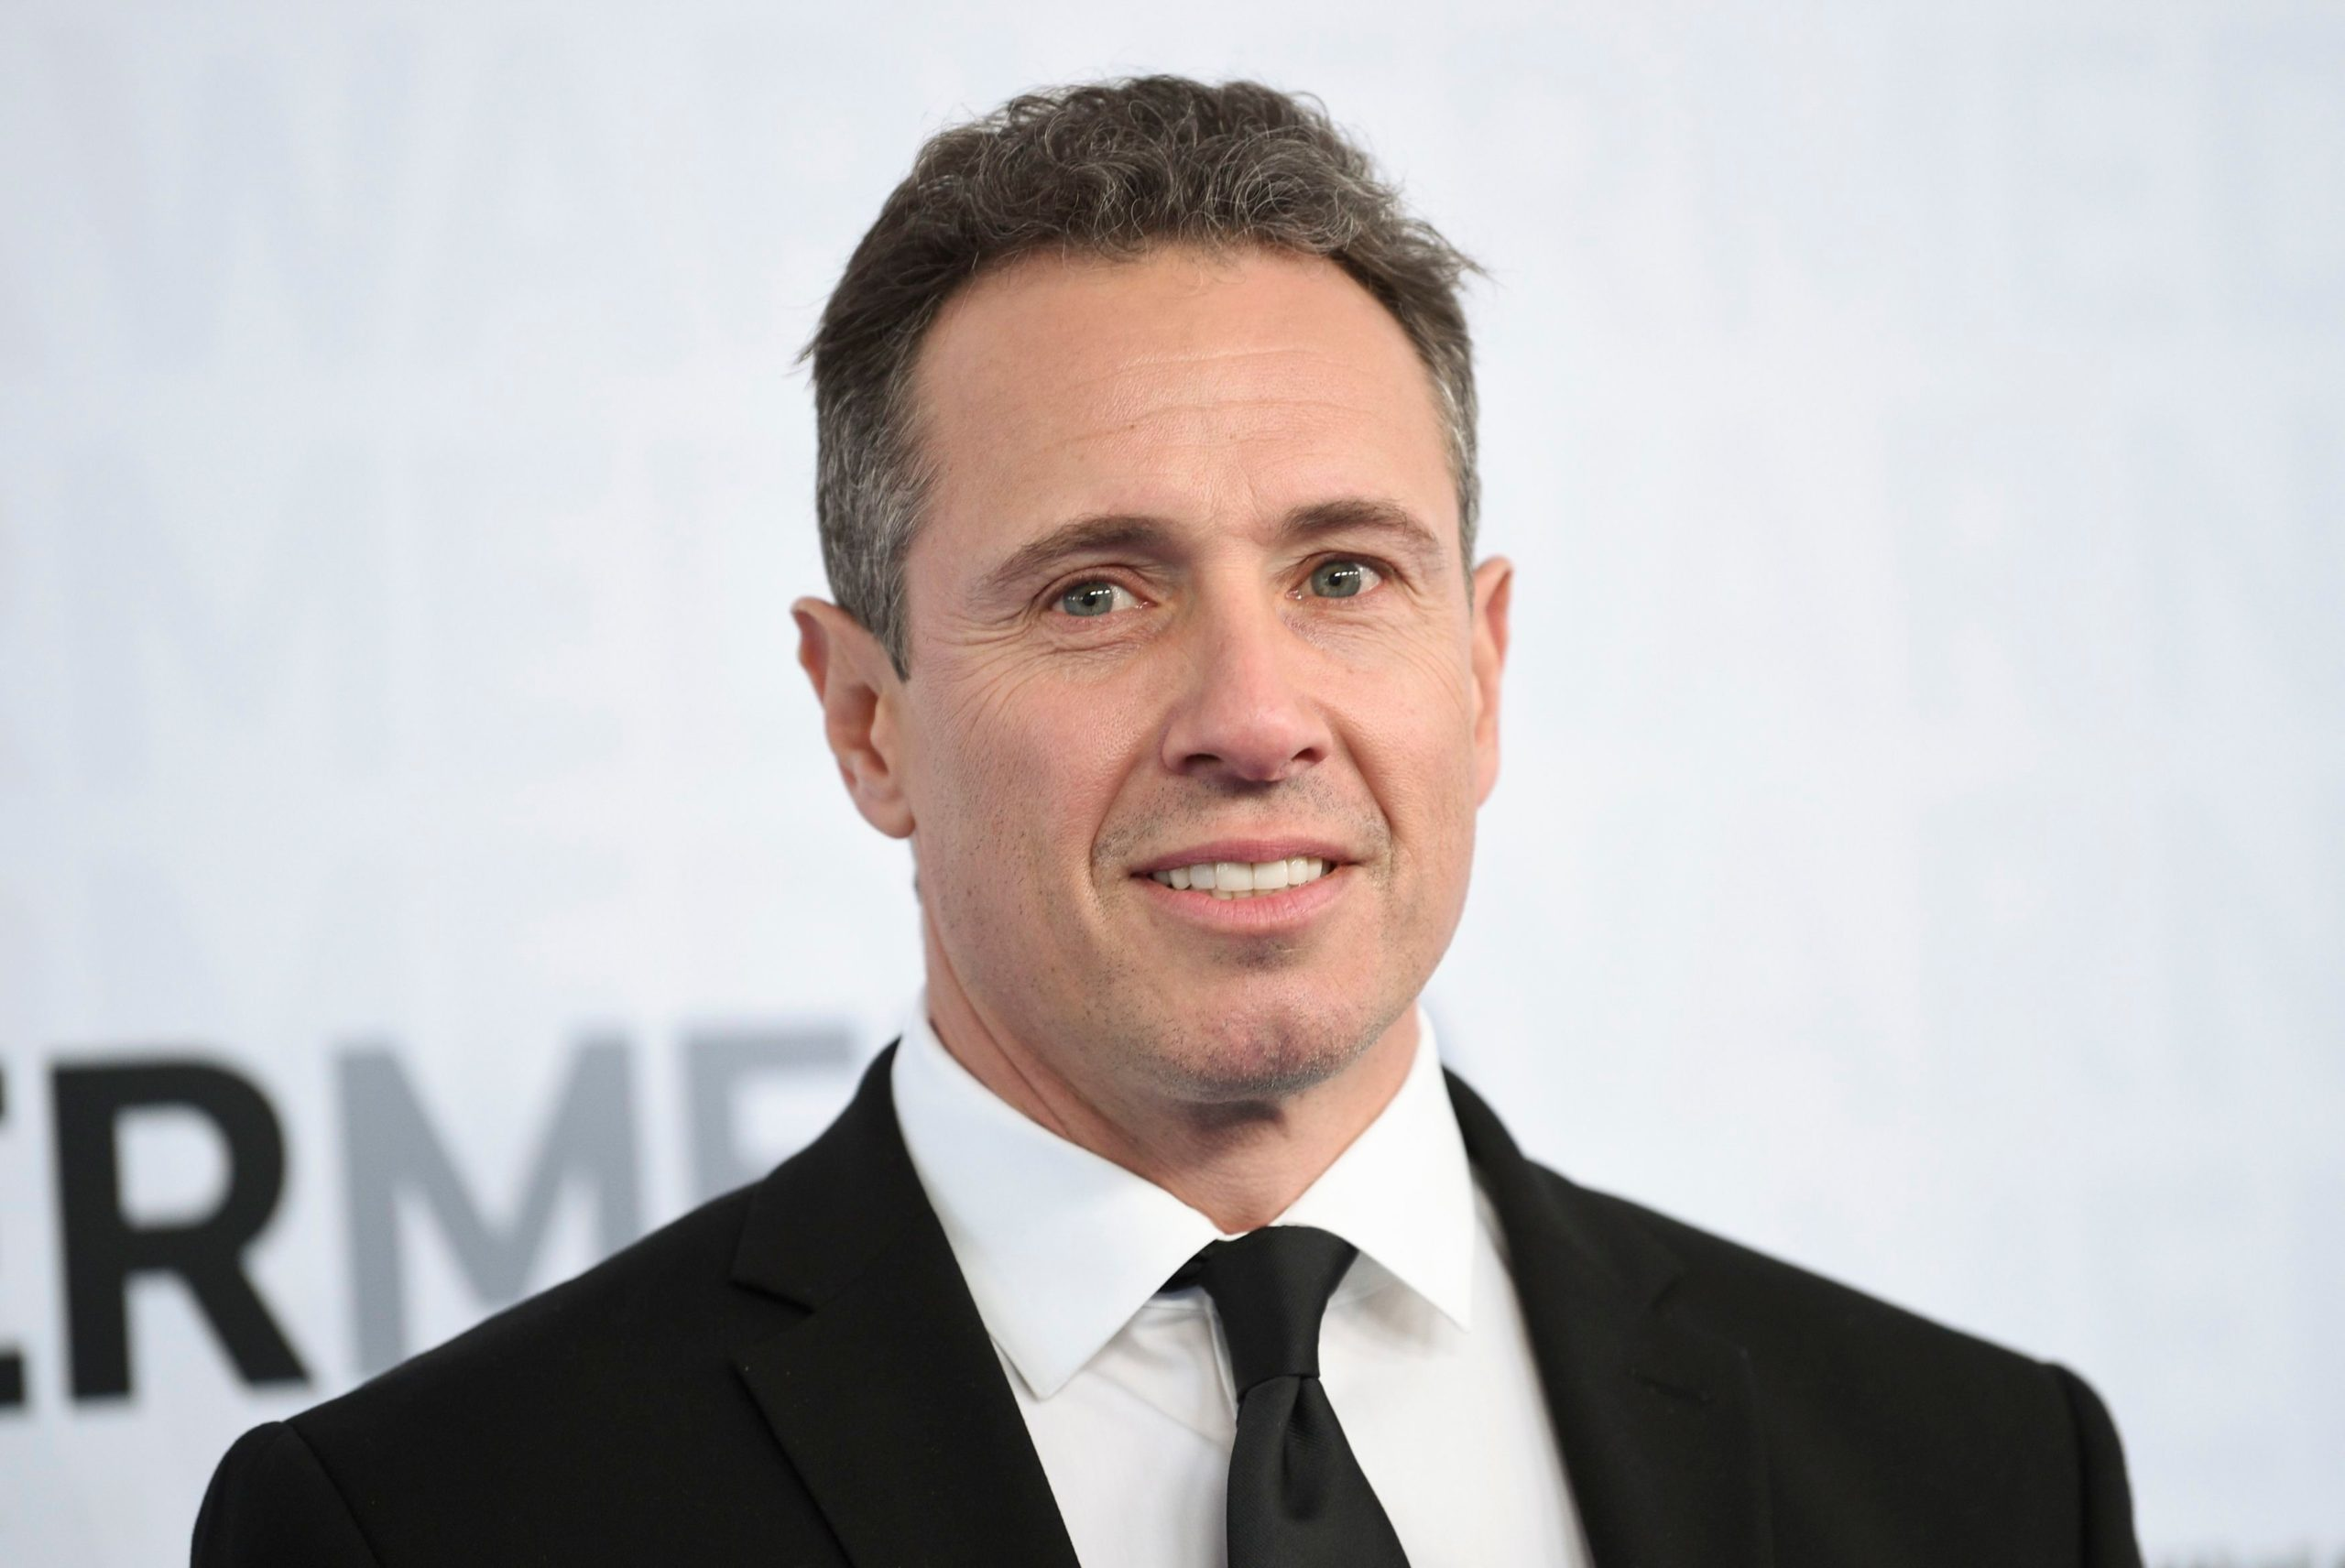 Chris Cuomo Breaks Silence About Andrew Cuomo's Resignation Amid Sexual Harassment Allegations